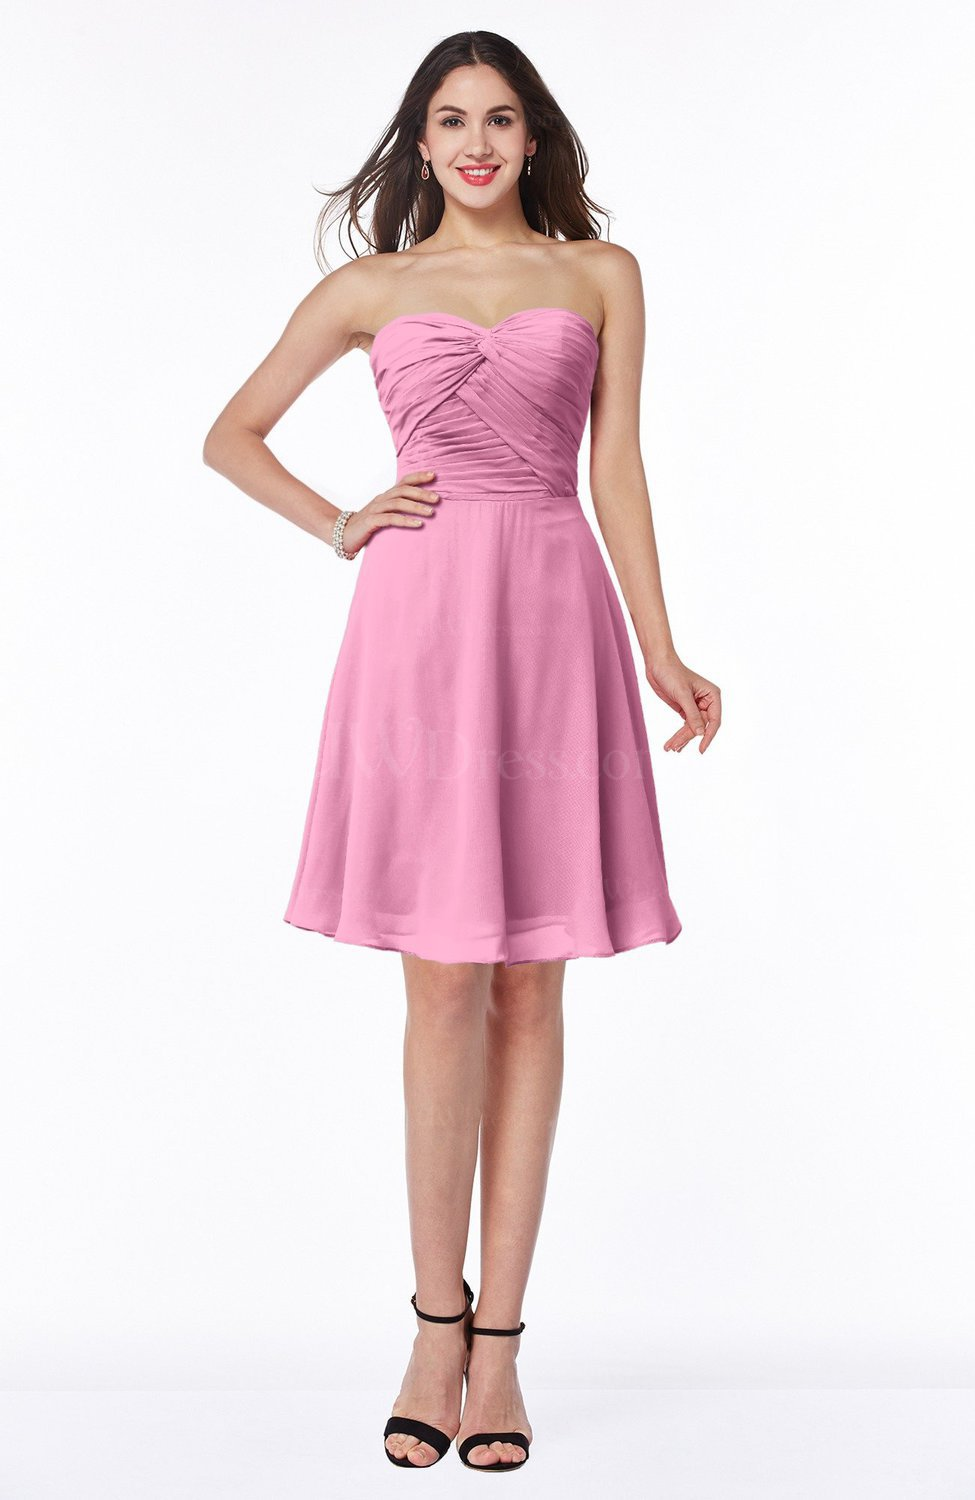 Pink Informal Wedding Dresses : Pink informal sleeveless chiffon short ruching plus size